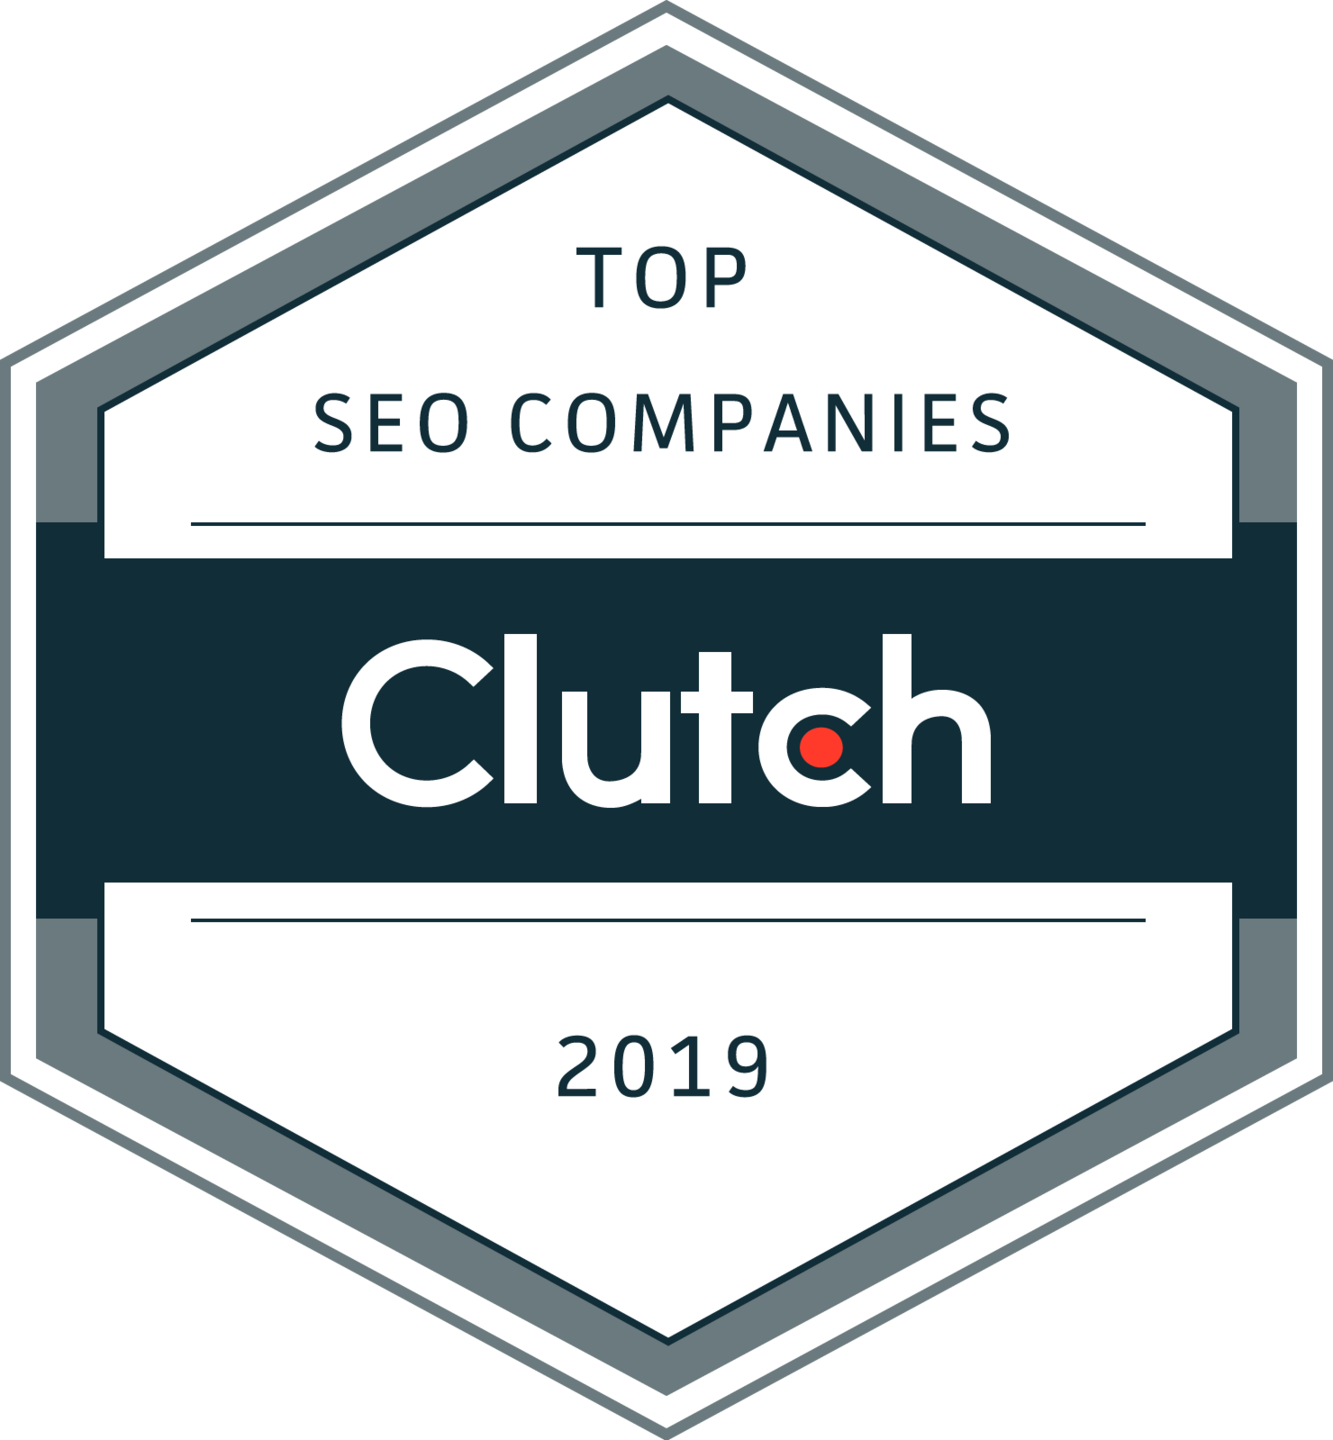 Instaboost Media is one of the top seo companies in 2019 according to Clutch